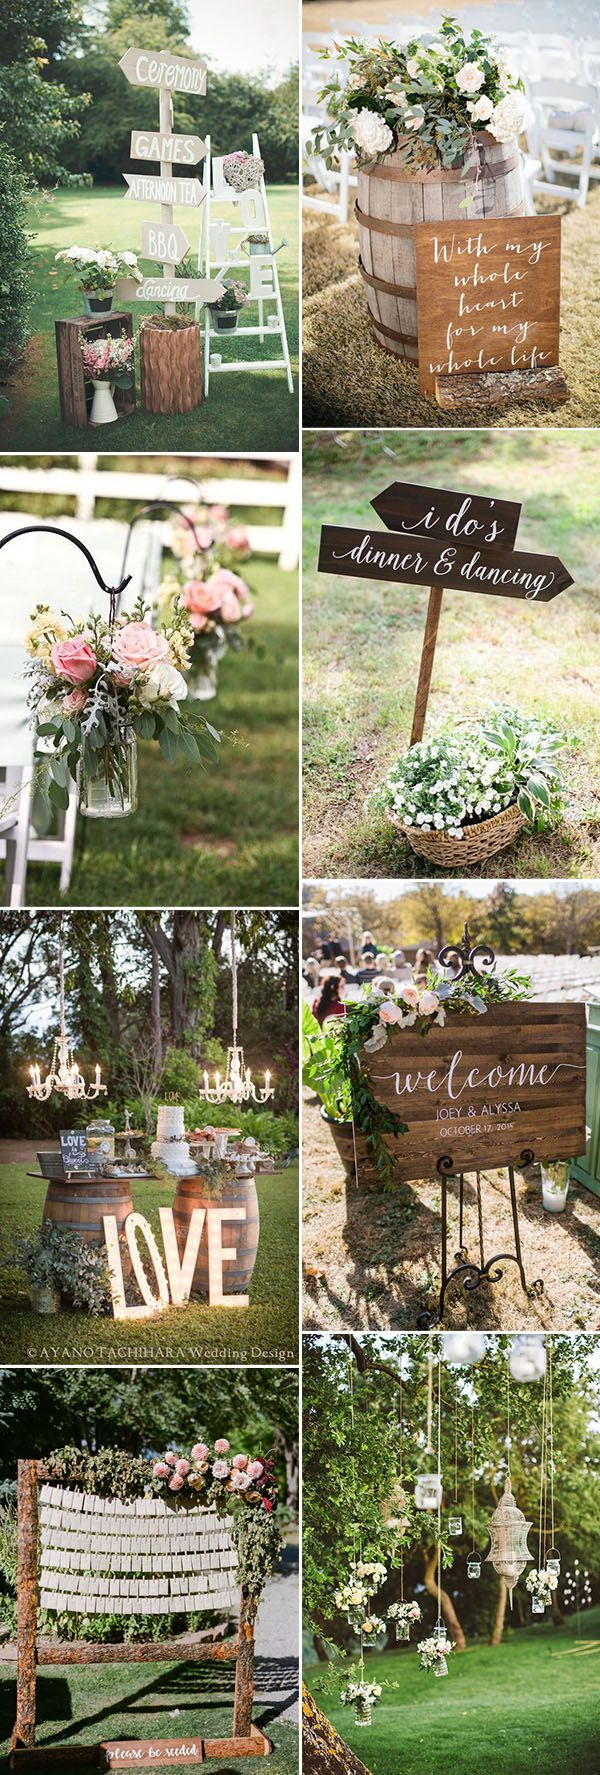 Best 25 Diy wedding decorations ideas only on Pinterest Wedding